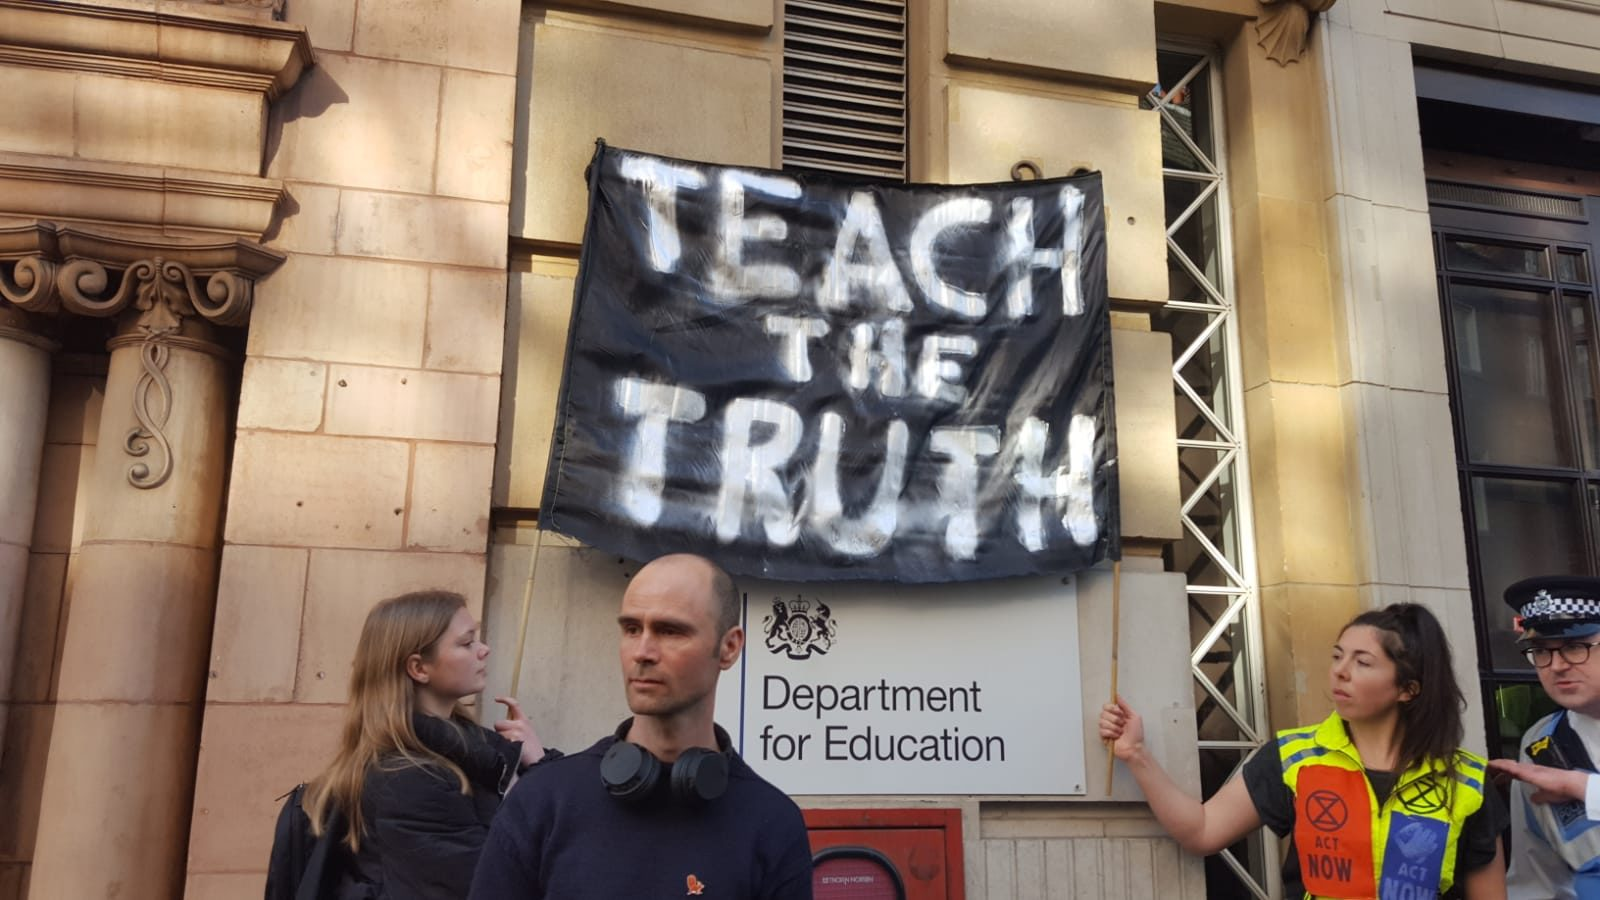 XR 1600x900 - Can teachers arrested at Extinction Rebellion continue to teach?